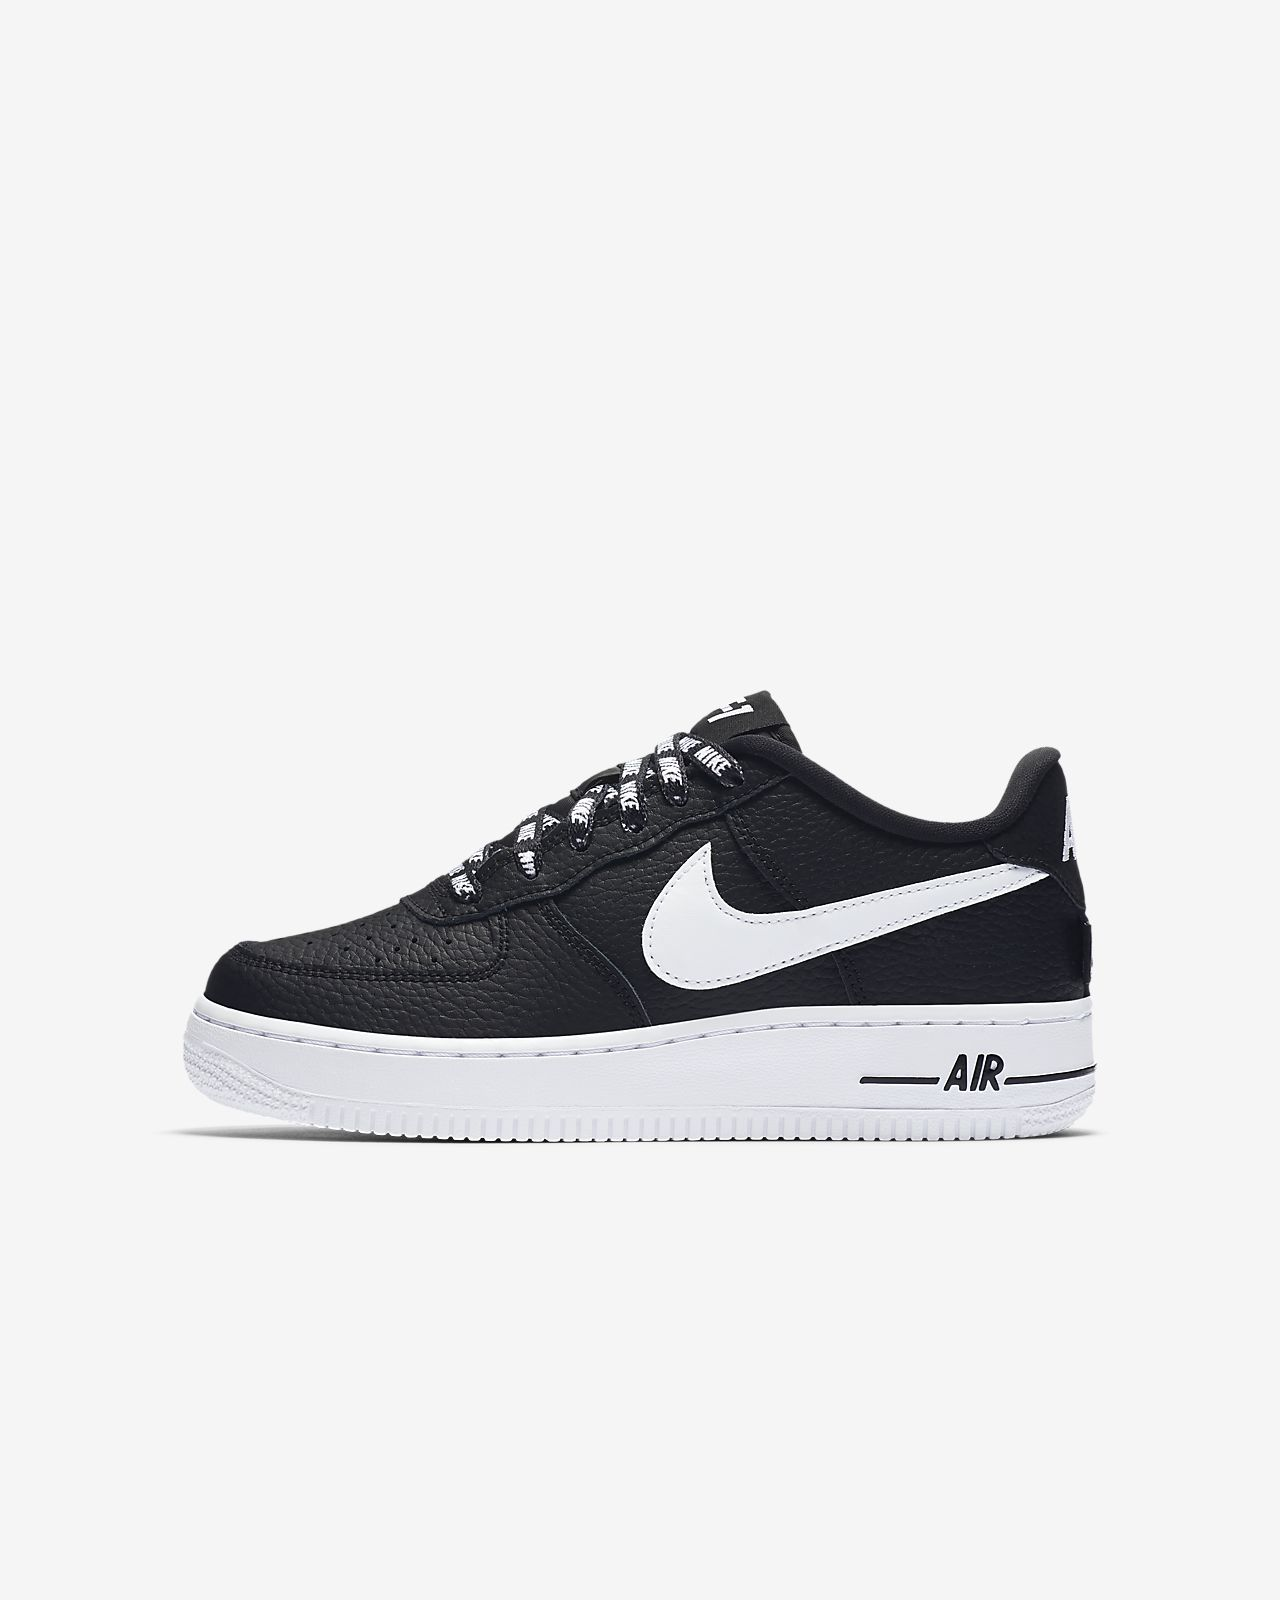 air force 1 nba white nz